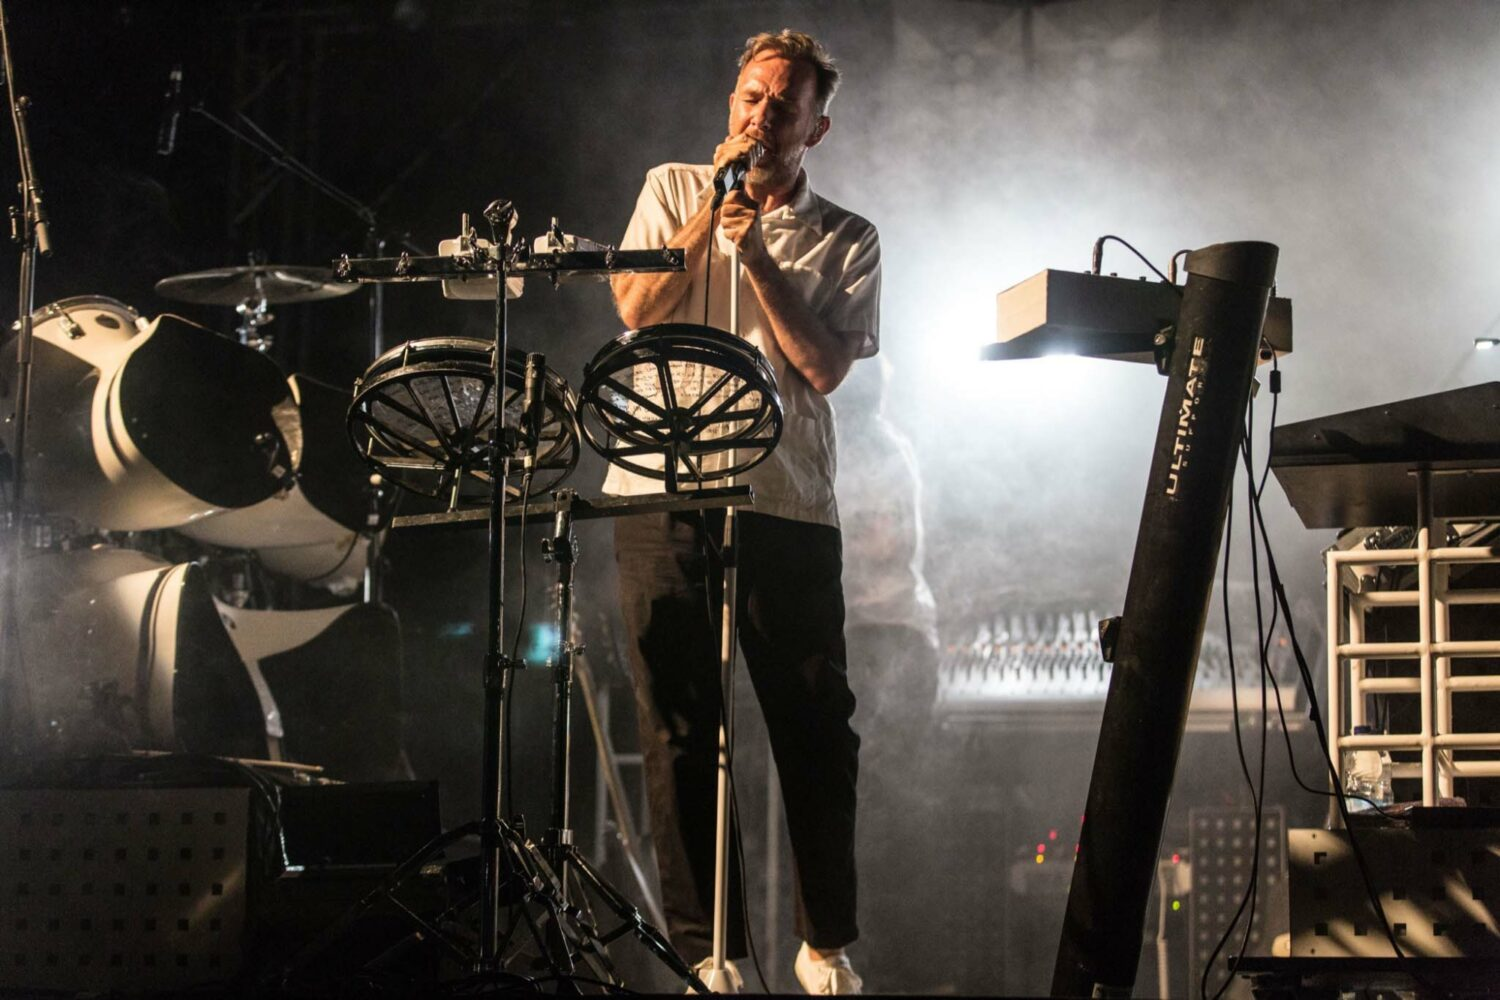 Soulwax are set to play M.I.A.'s Meltdown